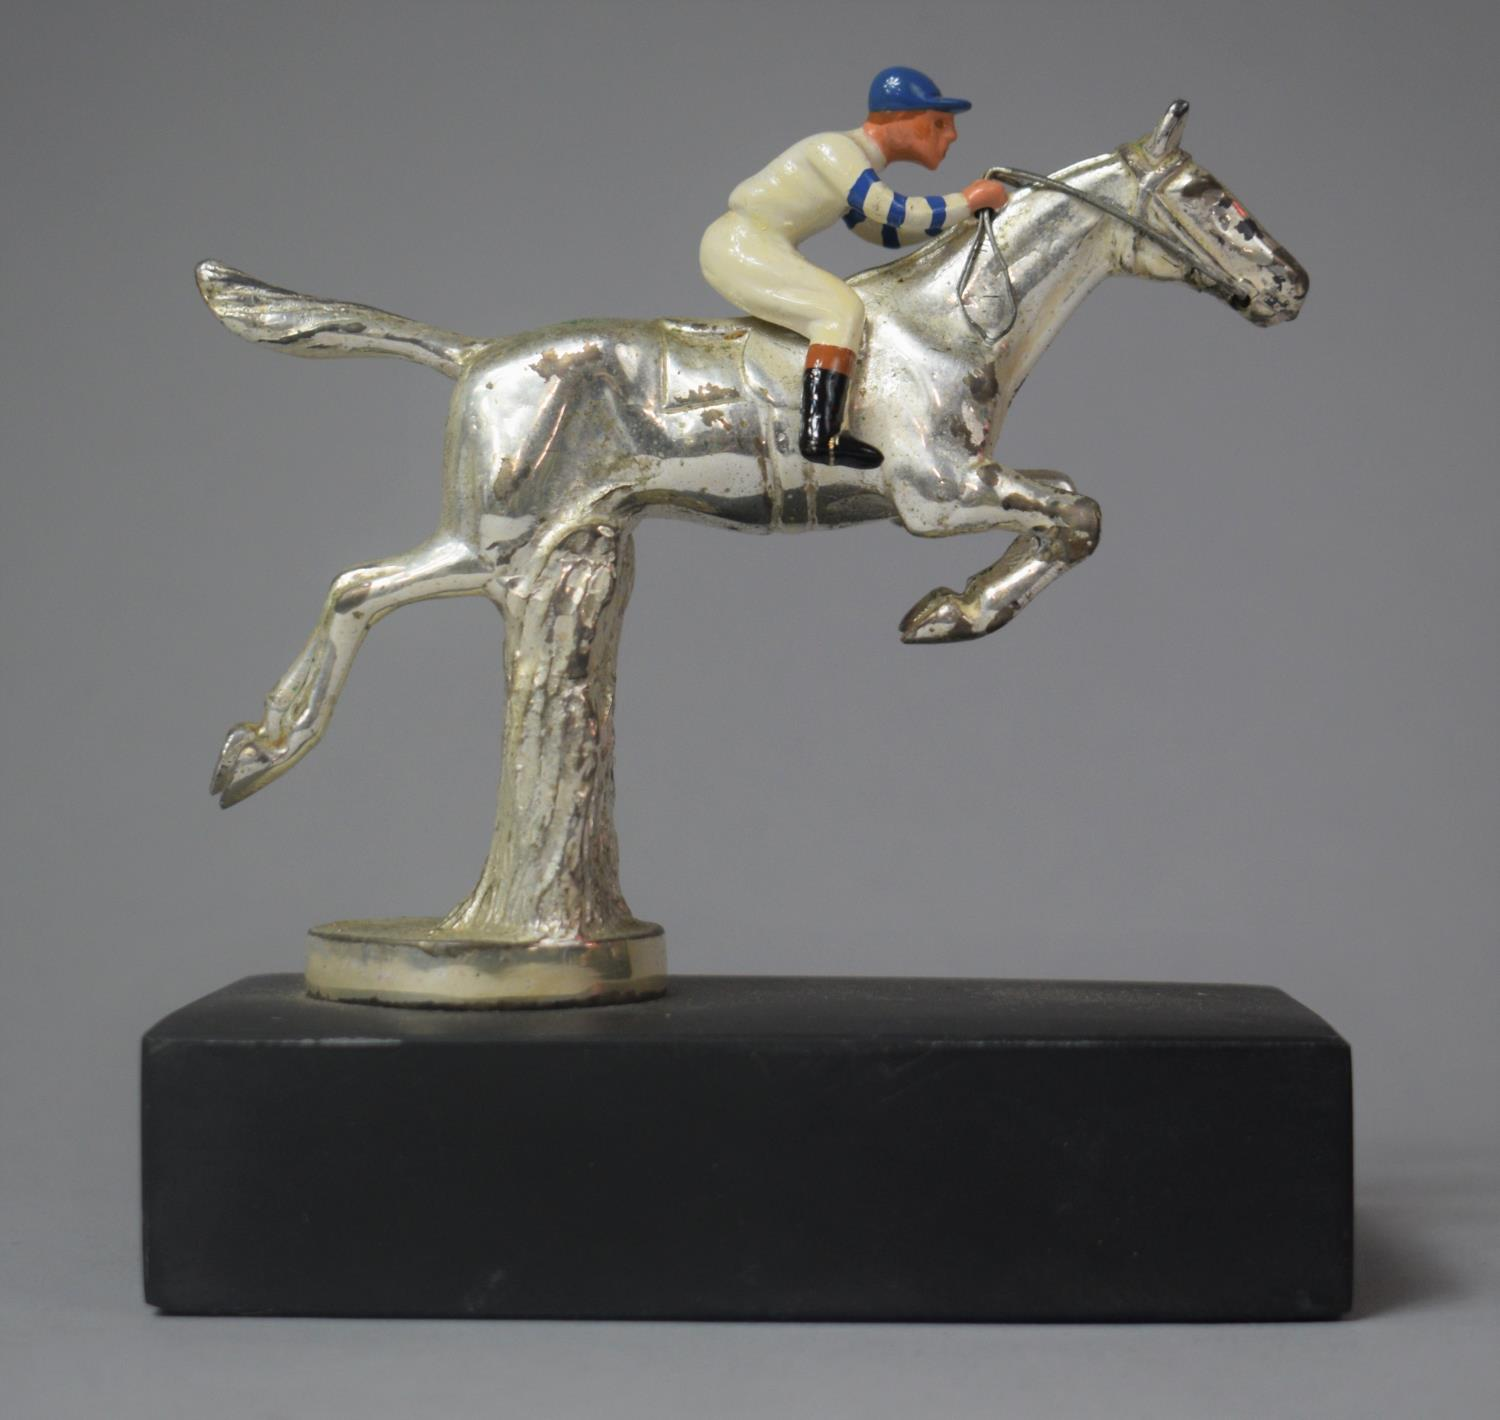 A Chromed Car Mascot in the Form of Racehorse and Jockey Taking Fence, 12.5cm high